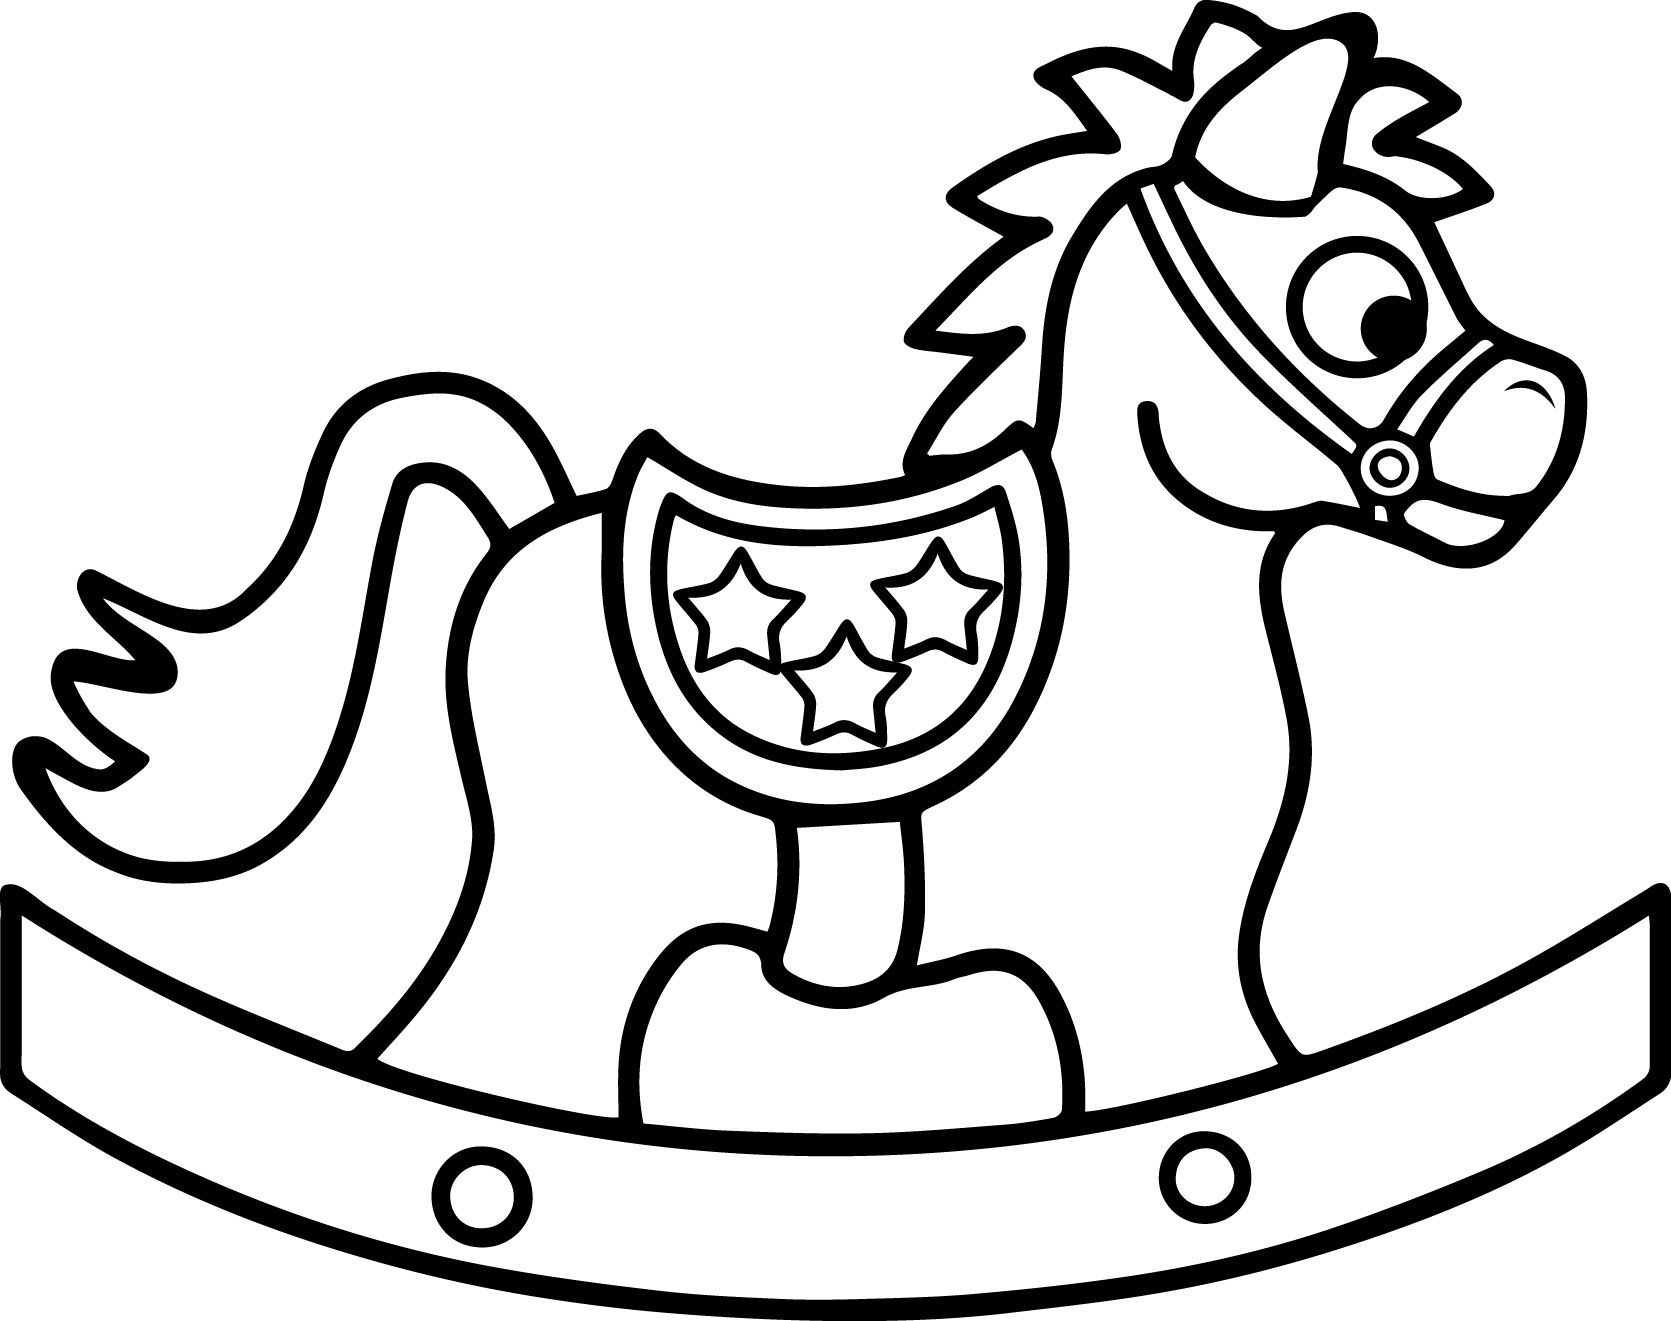 horse toy coloring page wecoloringpage daycare coloring